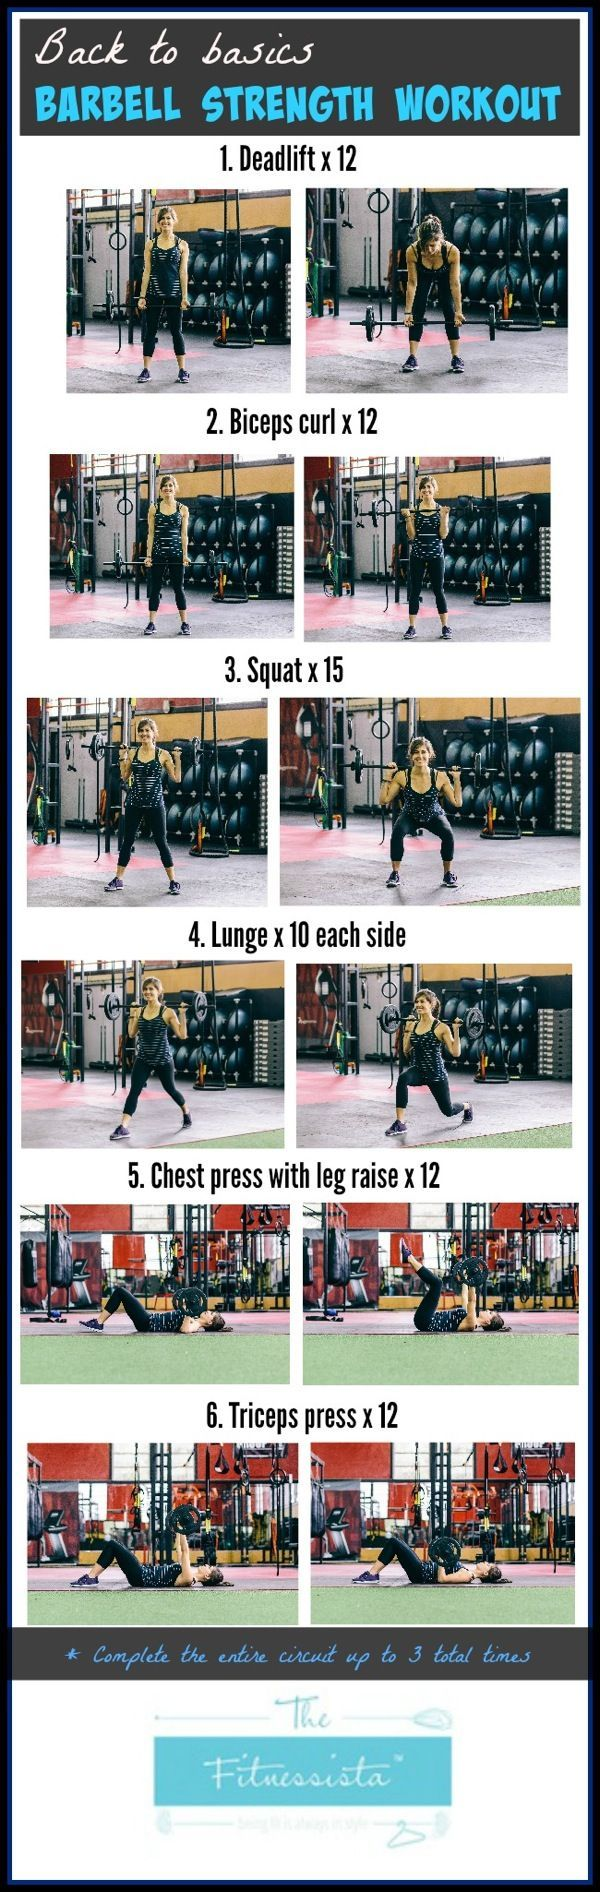 Back to basics barbell workout